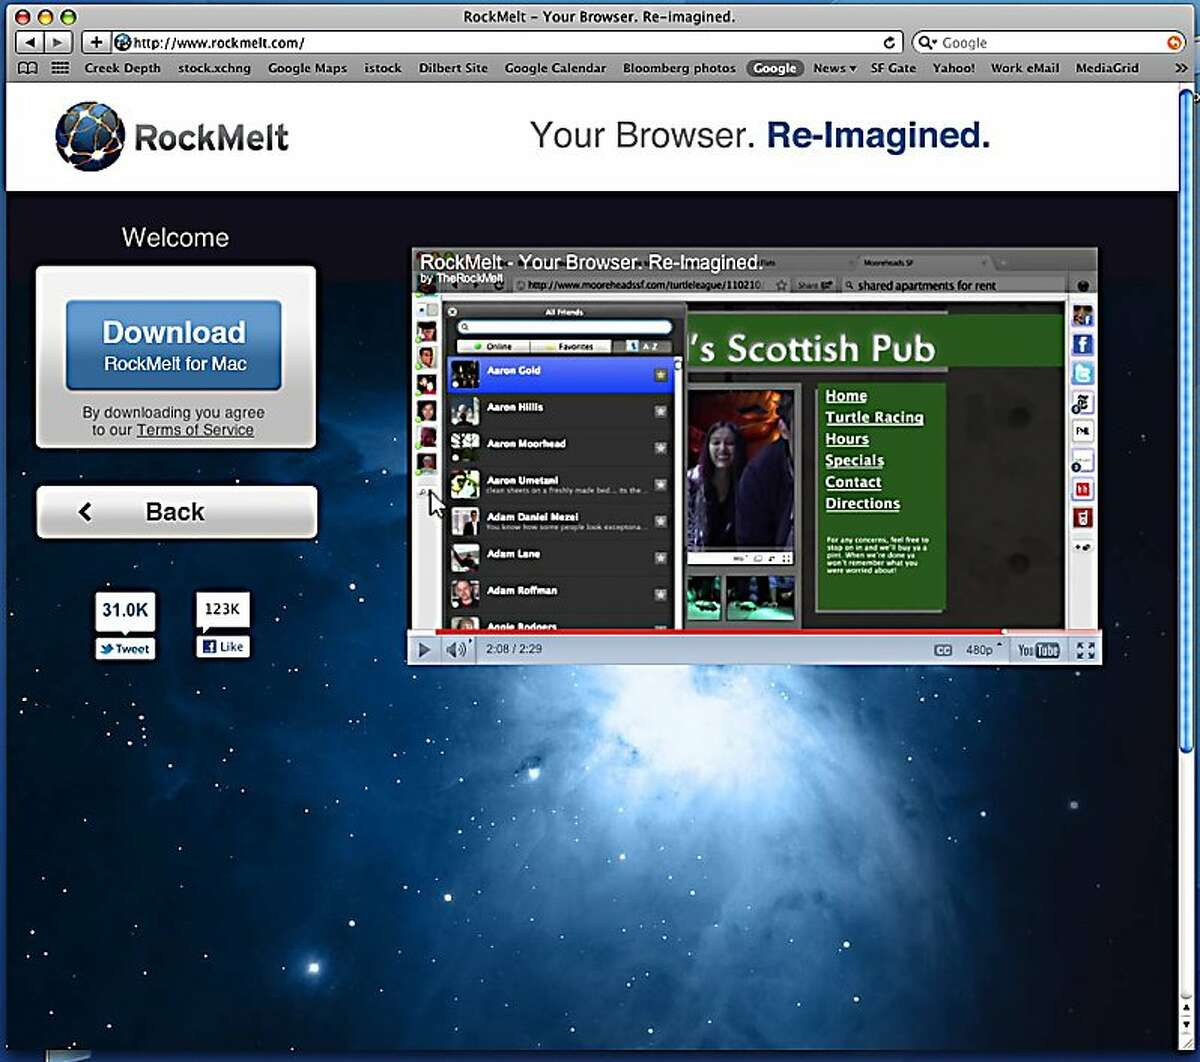 Screenshot from rockmelt.com, a Mountain View company that is launching a social web browser.